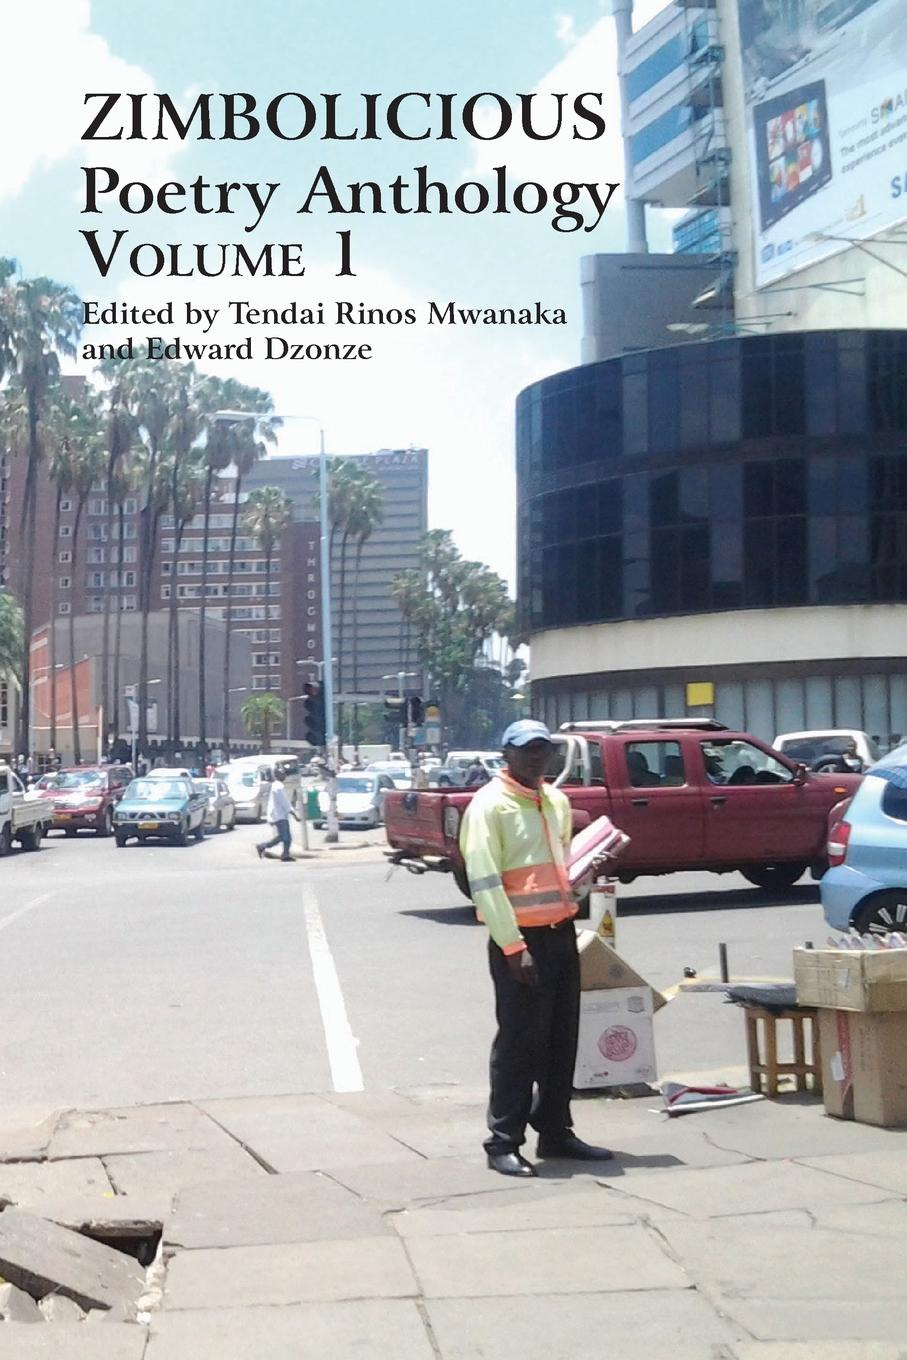 Zimbolicious Poetry Anthology. Volume 1 moss poetry and fable